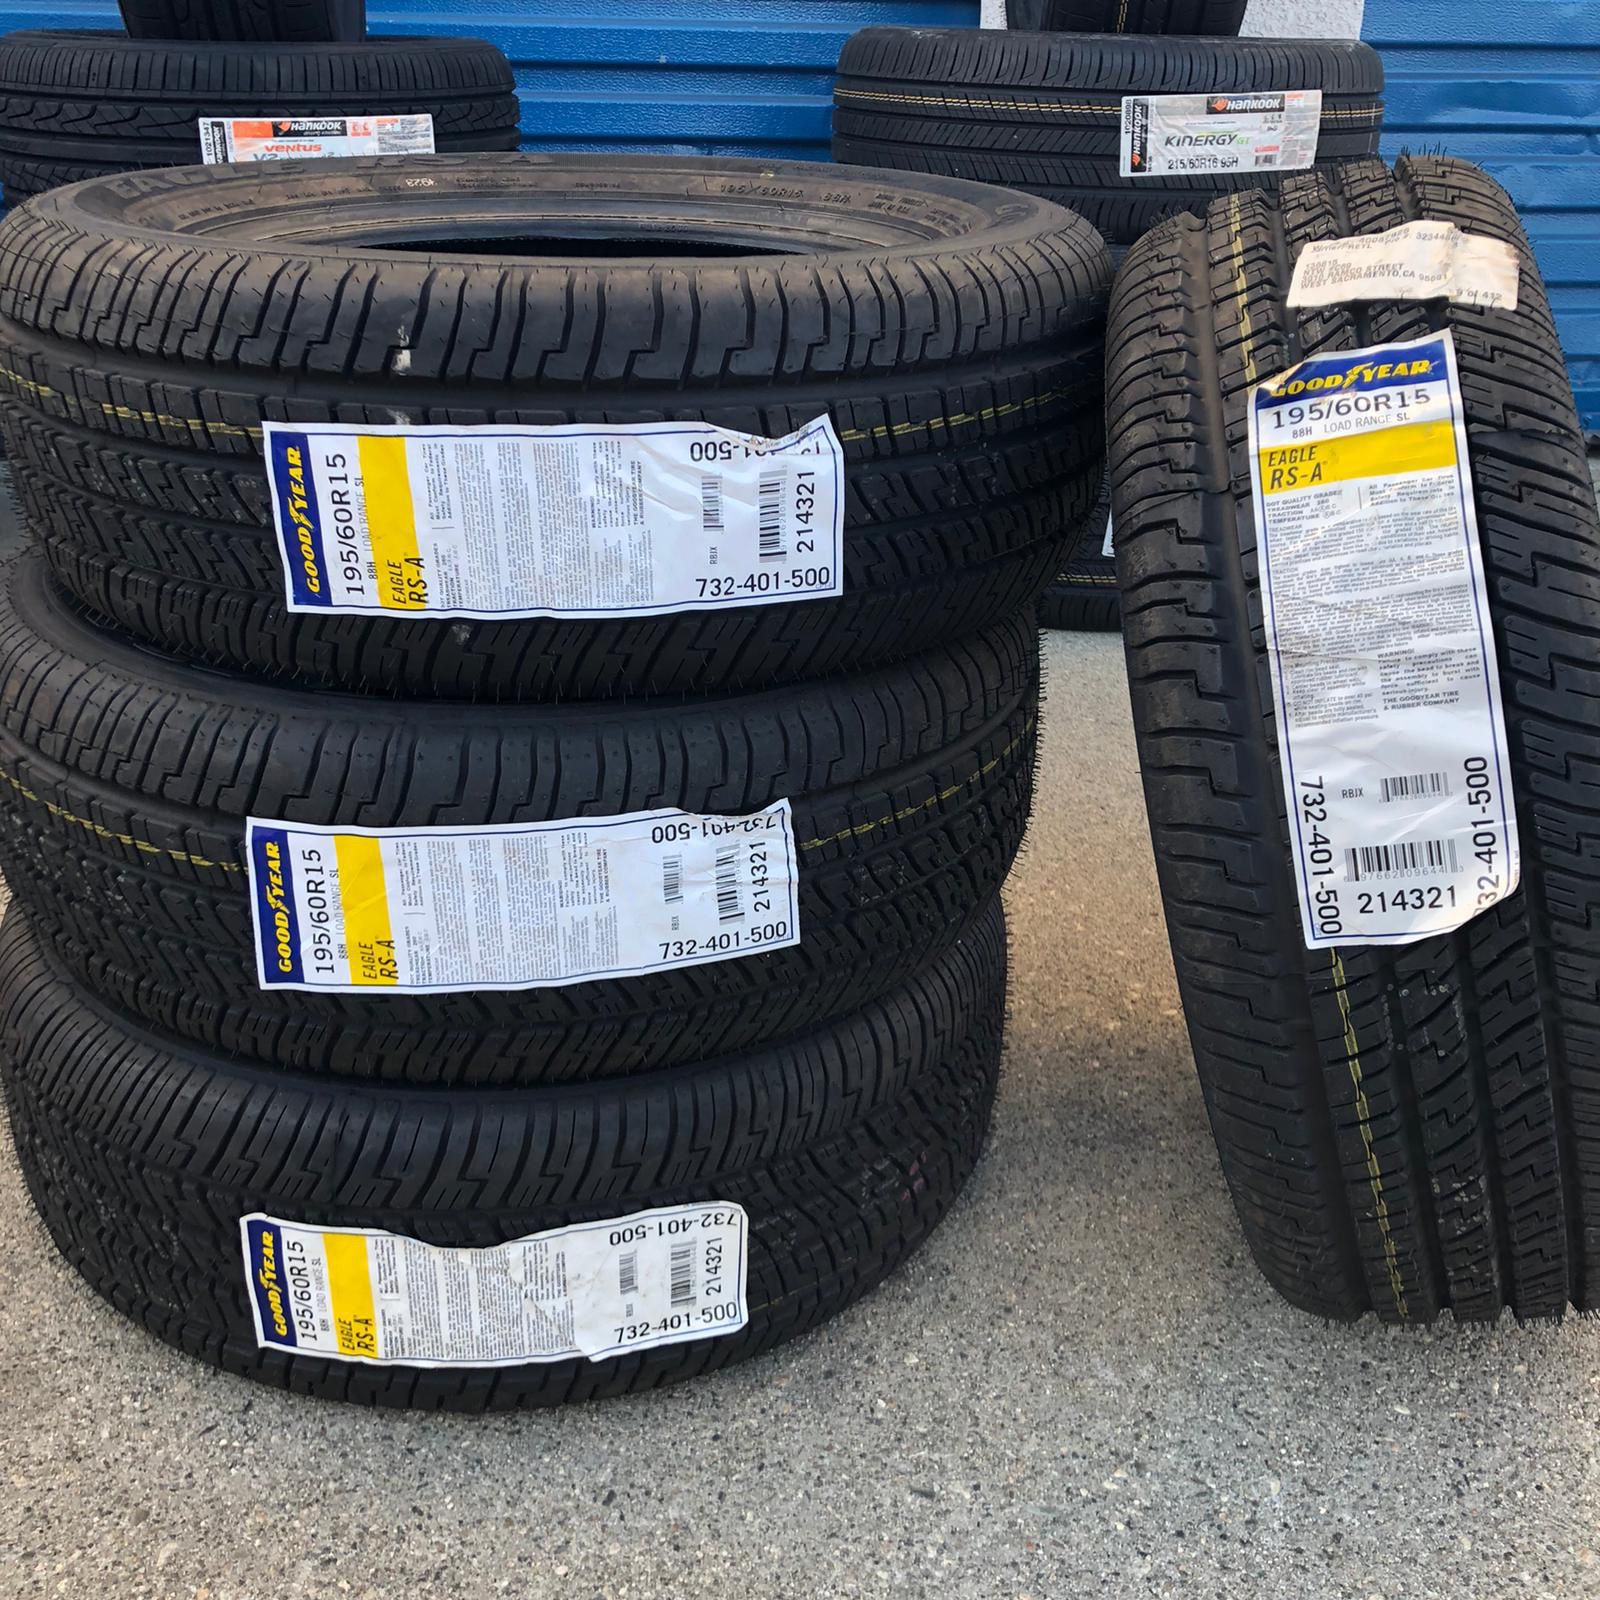 195/60/15 Goodyear Eagle Tires New $240